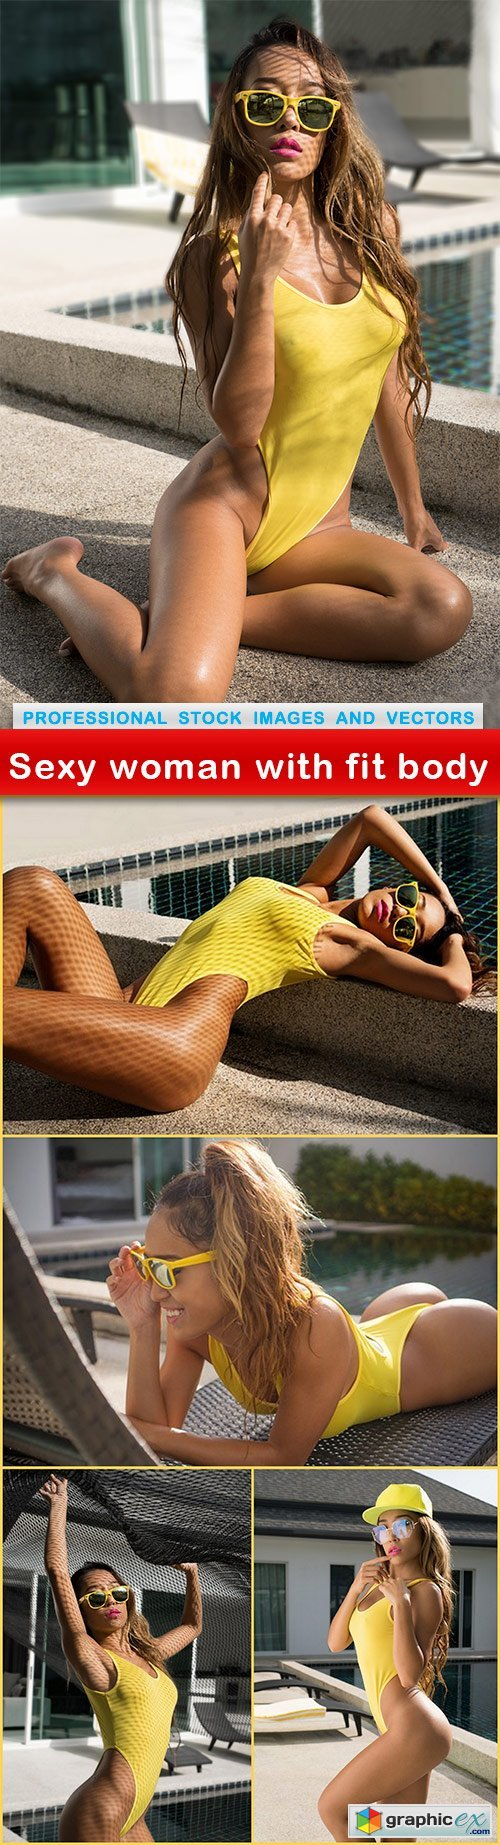 Sexy woman with fit body - 5 UHQ JPEG